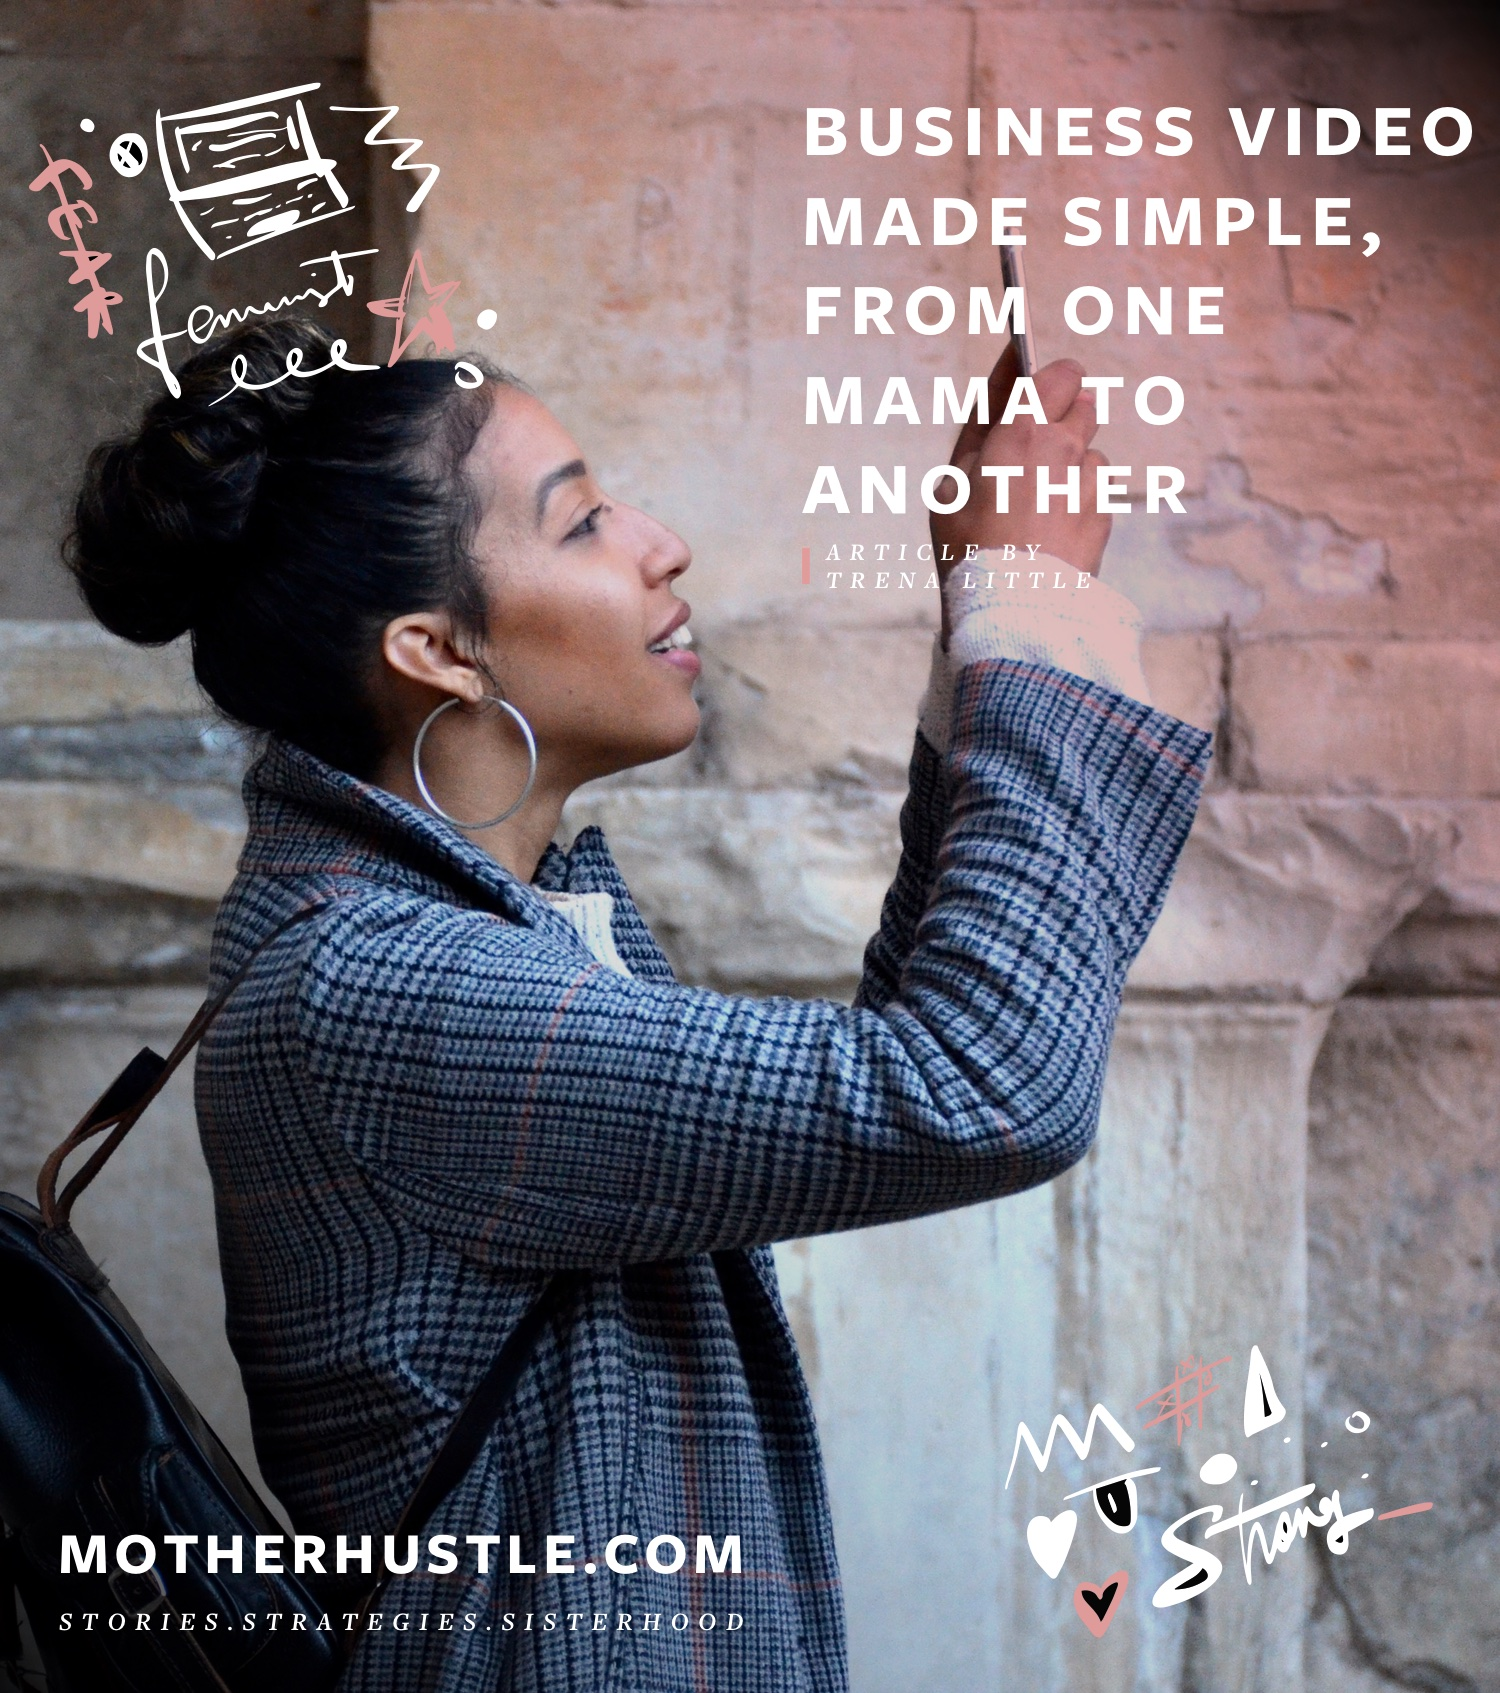 Business Video Made Simple, From One Mama to Another - by Trena Little MotherHustle